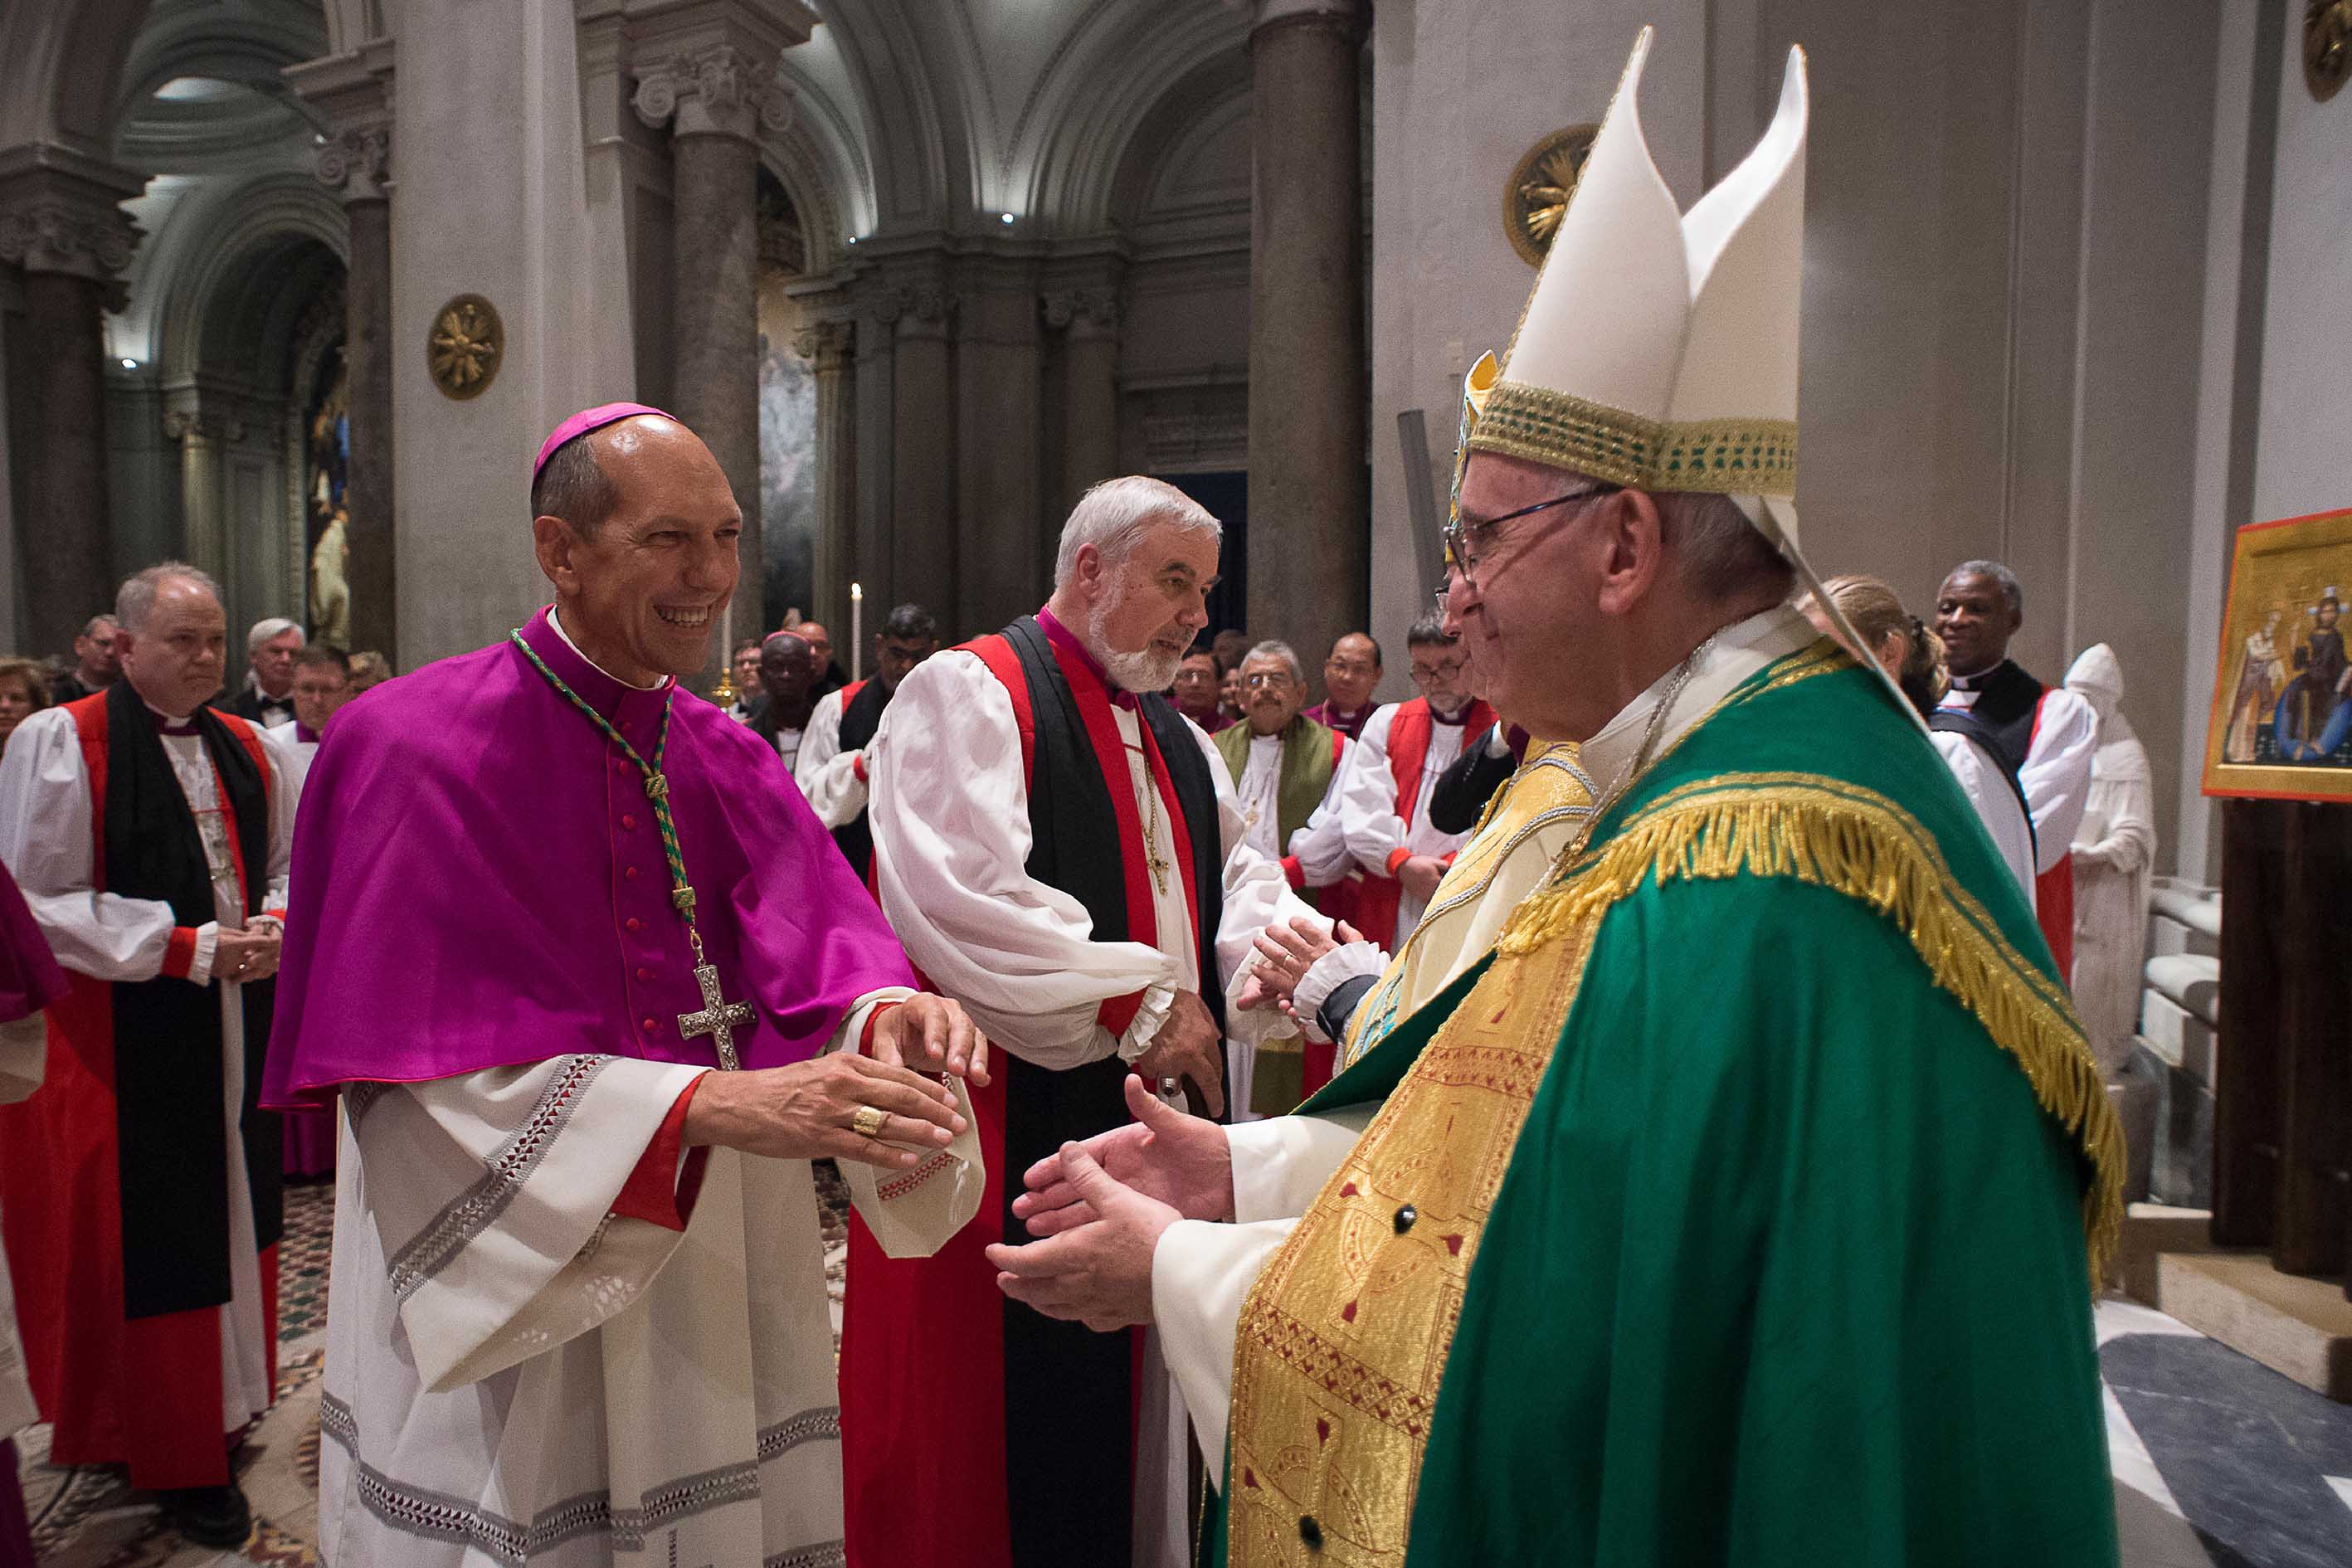 Pope Francis greets Archbishop Donald Bolen, co-chair of IARCCUM, at the Vespers in San Gregorio al Celio